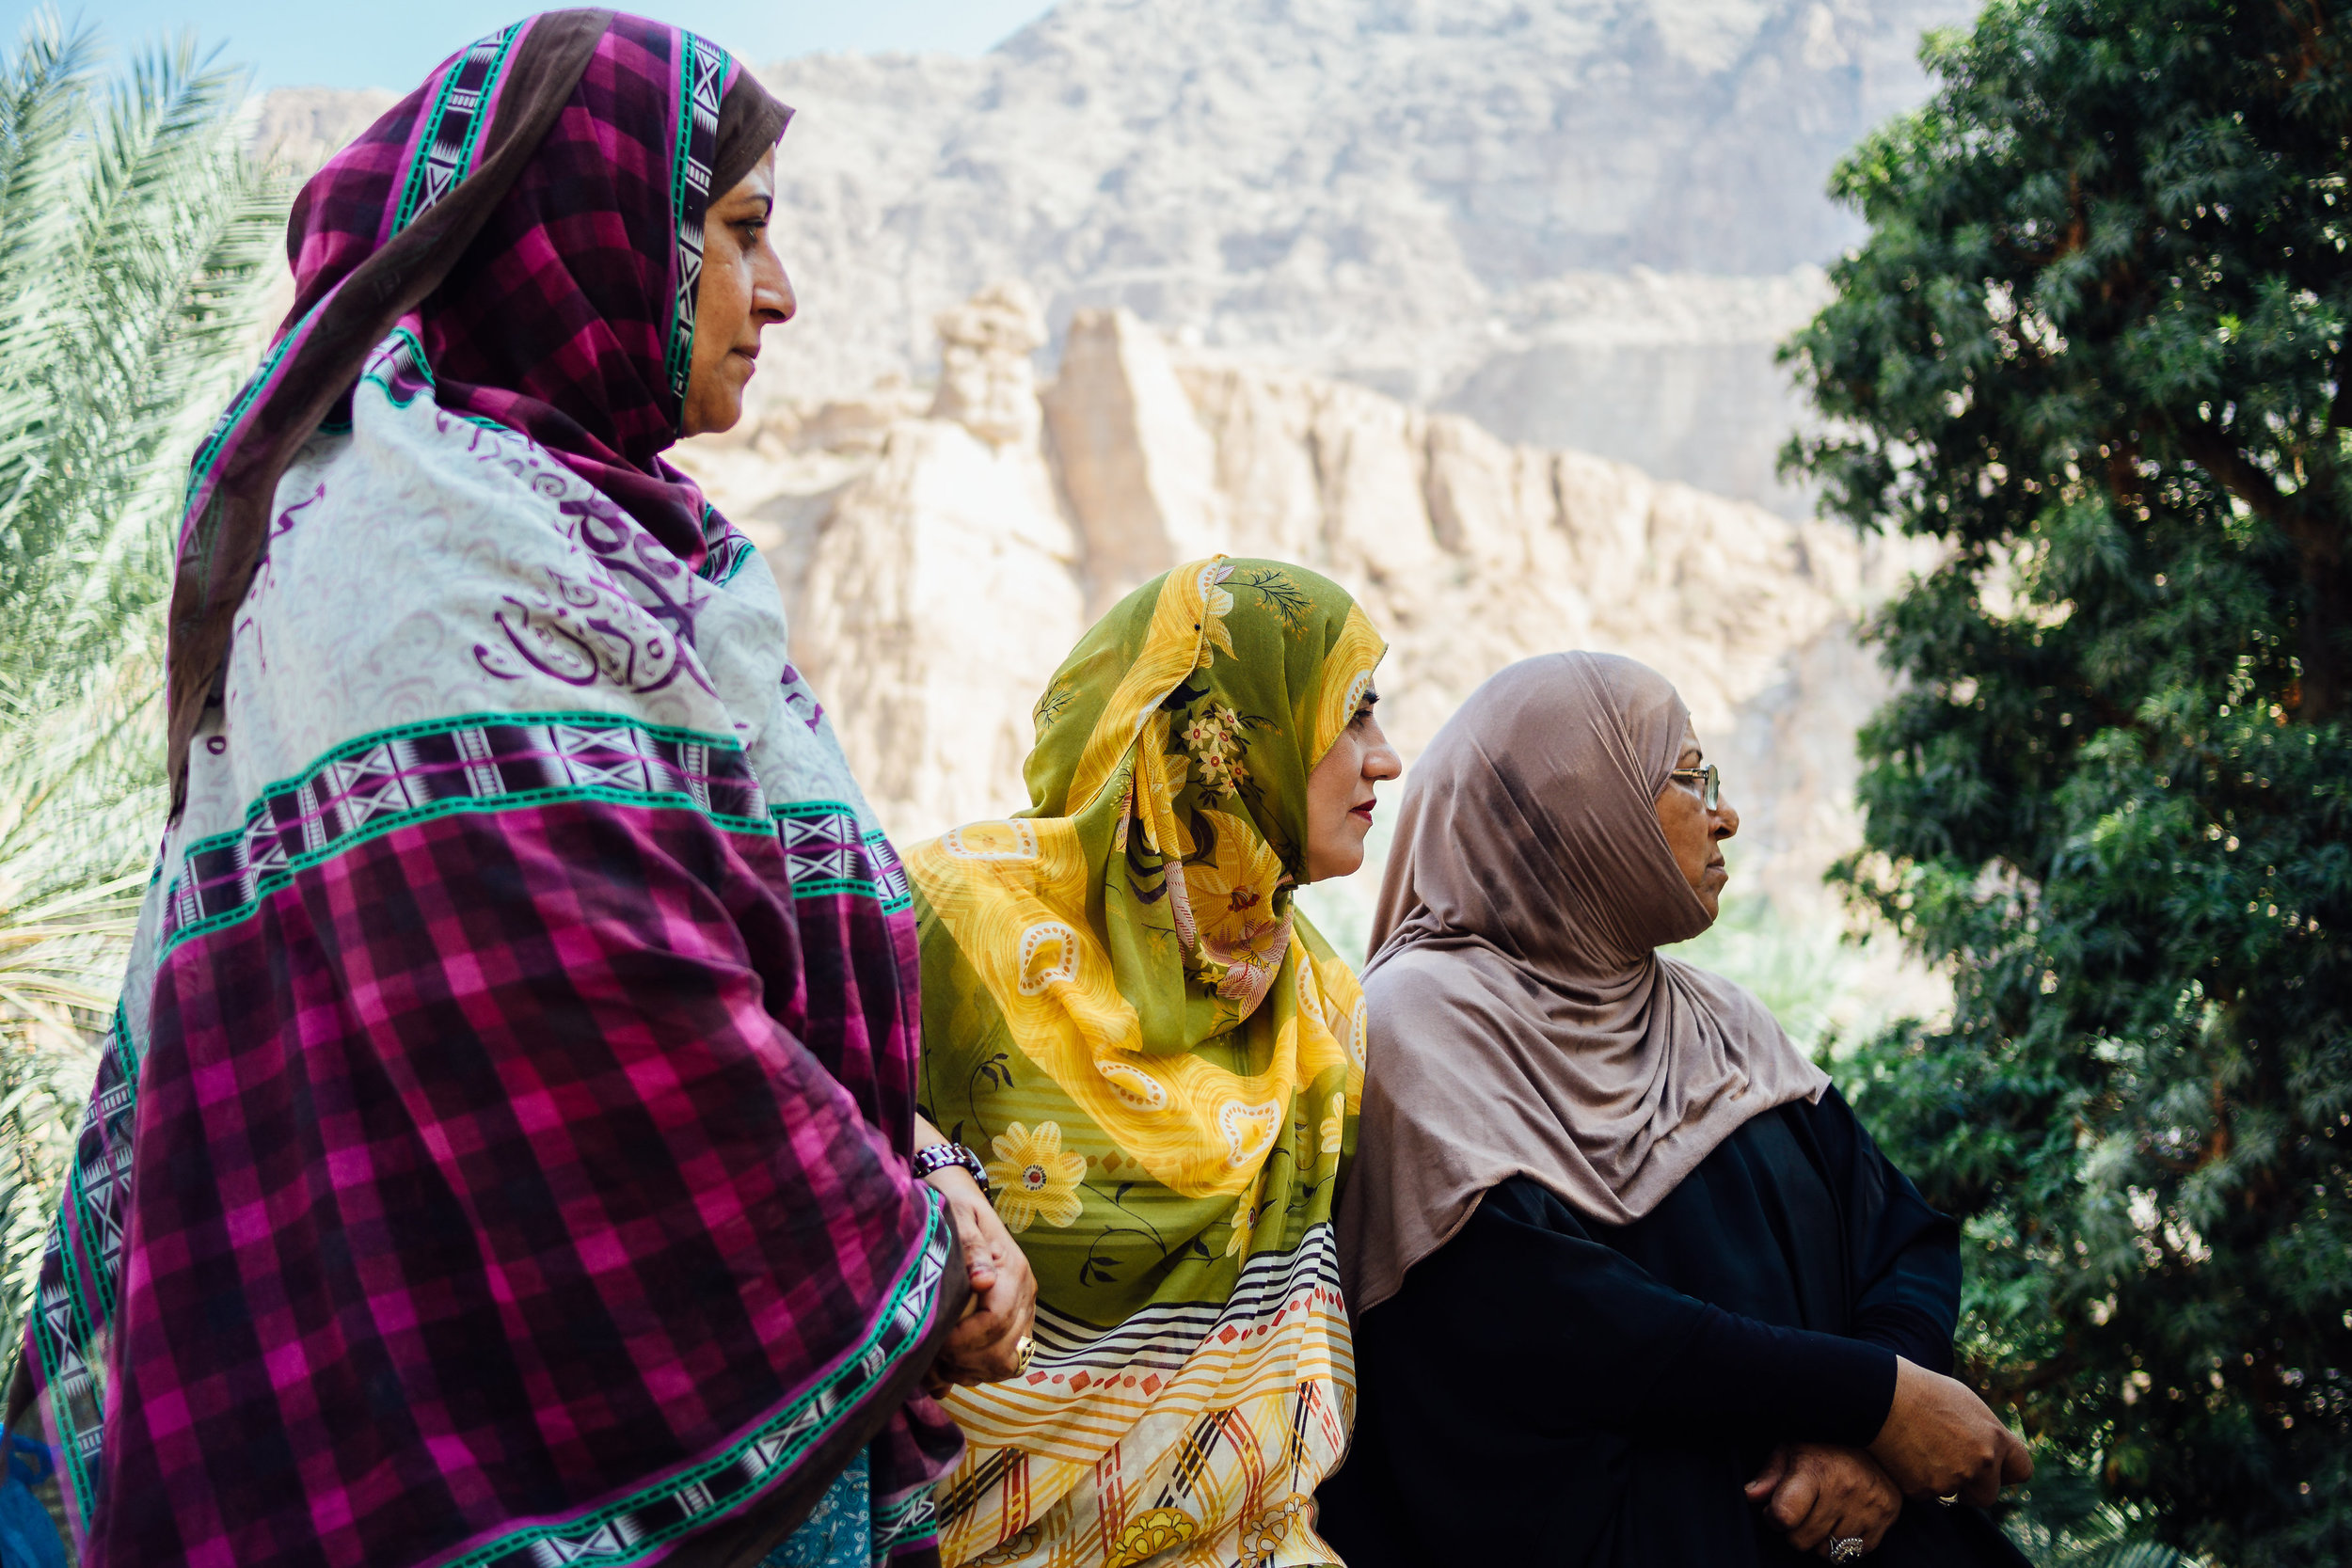 Women in Oman's rural areas often dress in bright colors.